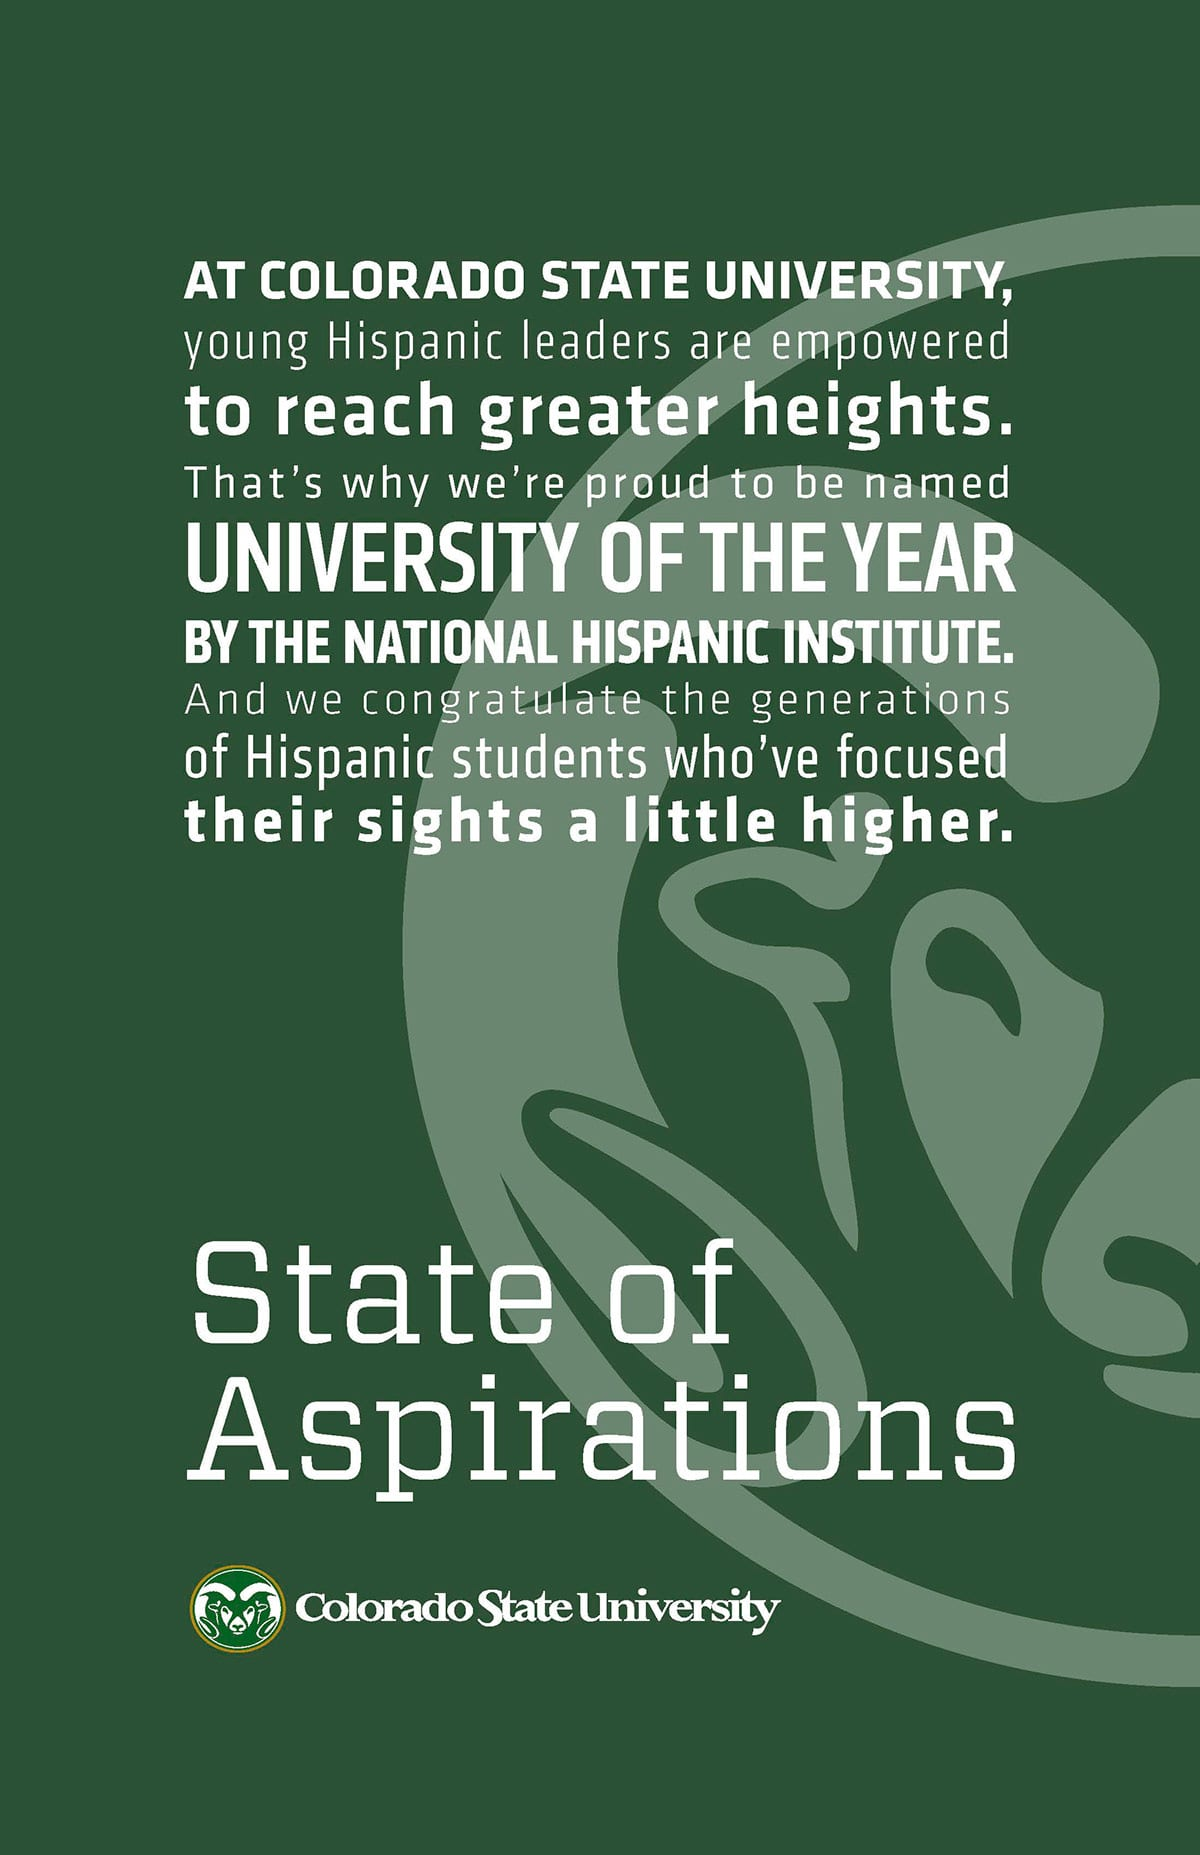 University of the Year Poster